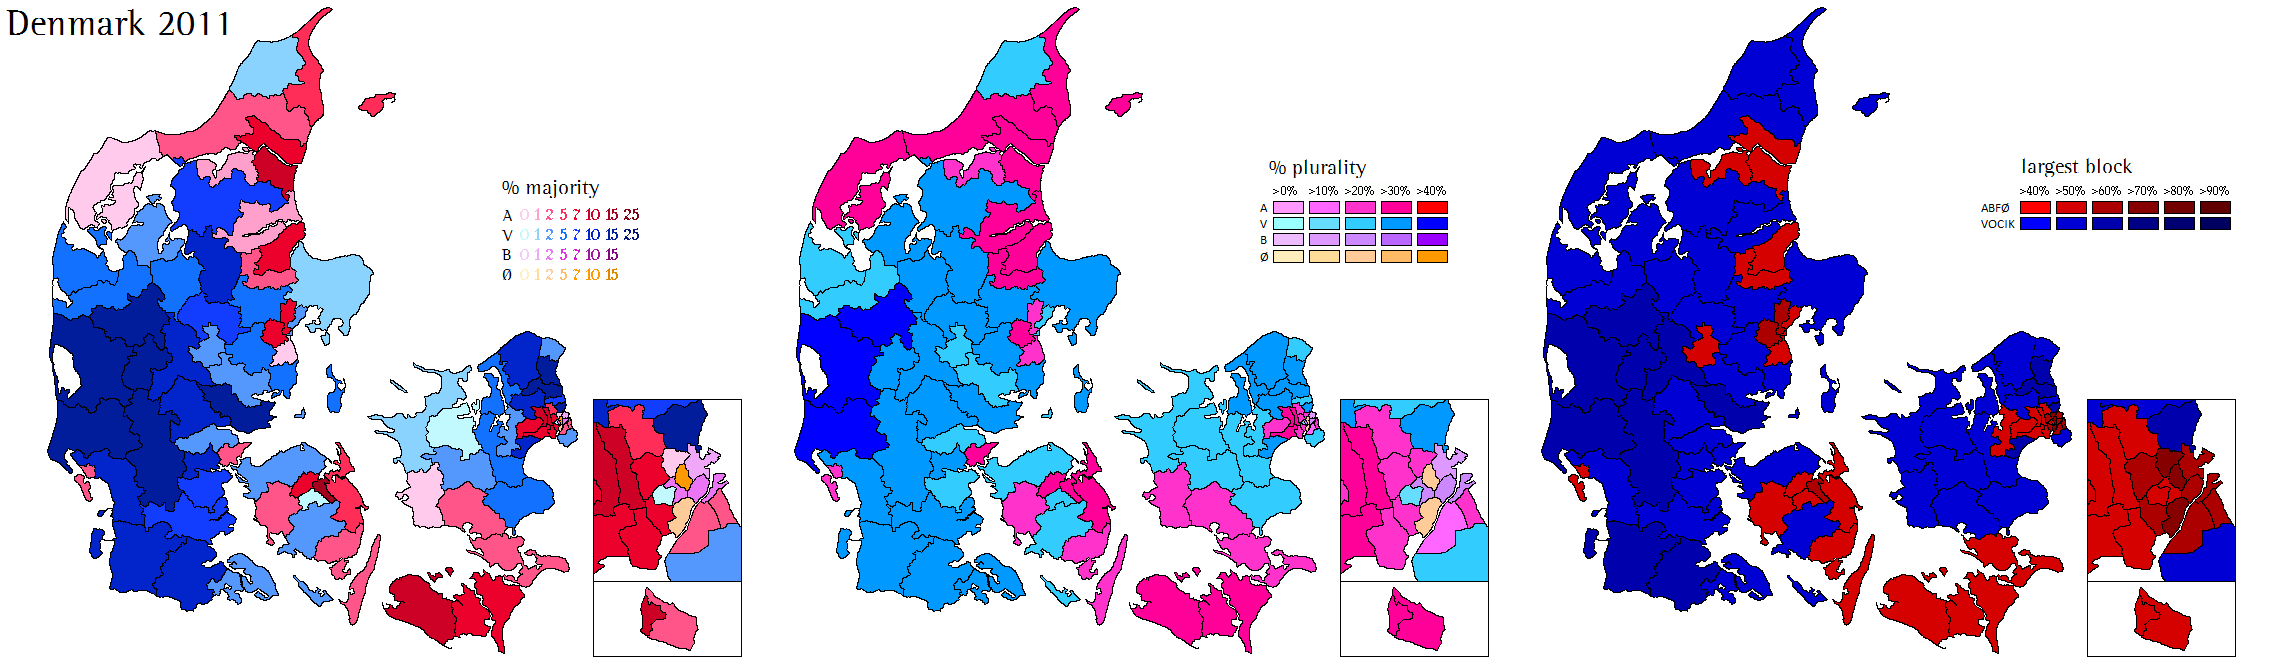 Denmark World Elections - Norway election map